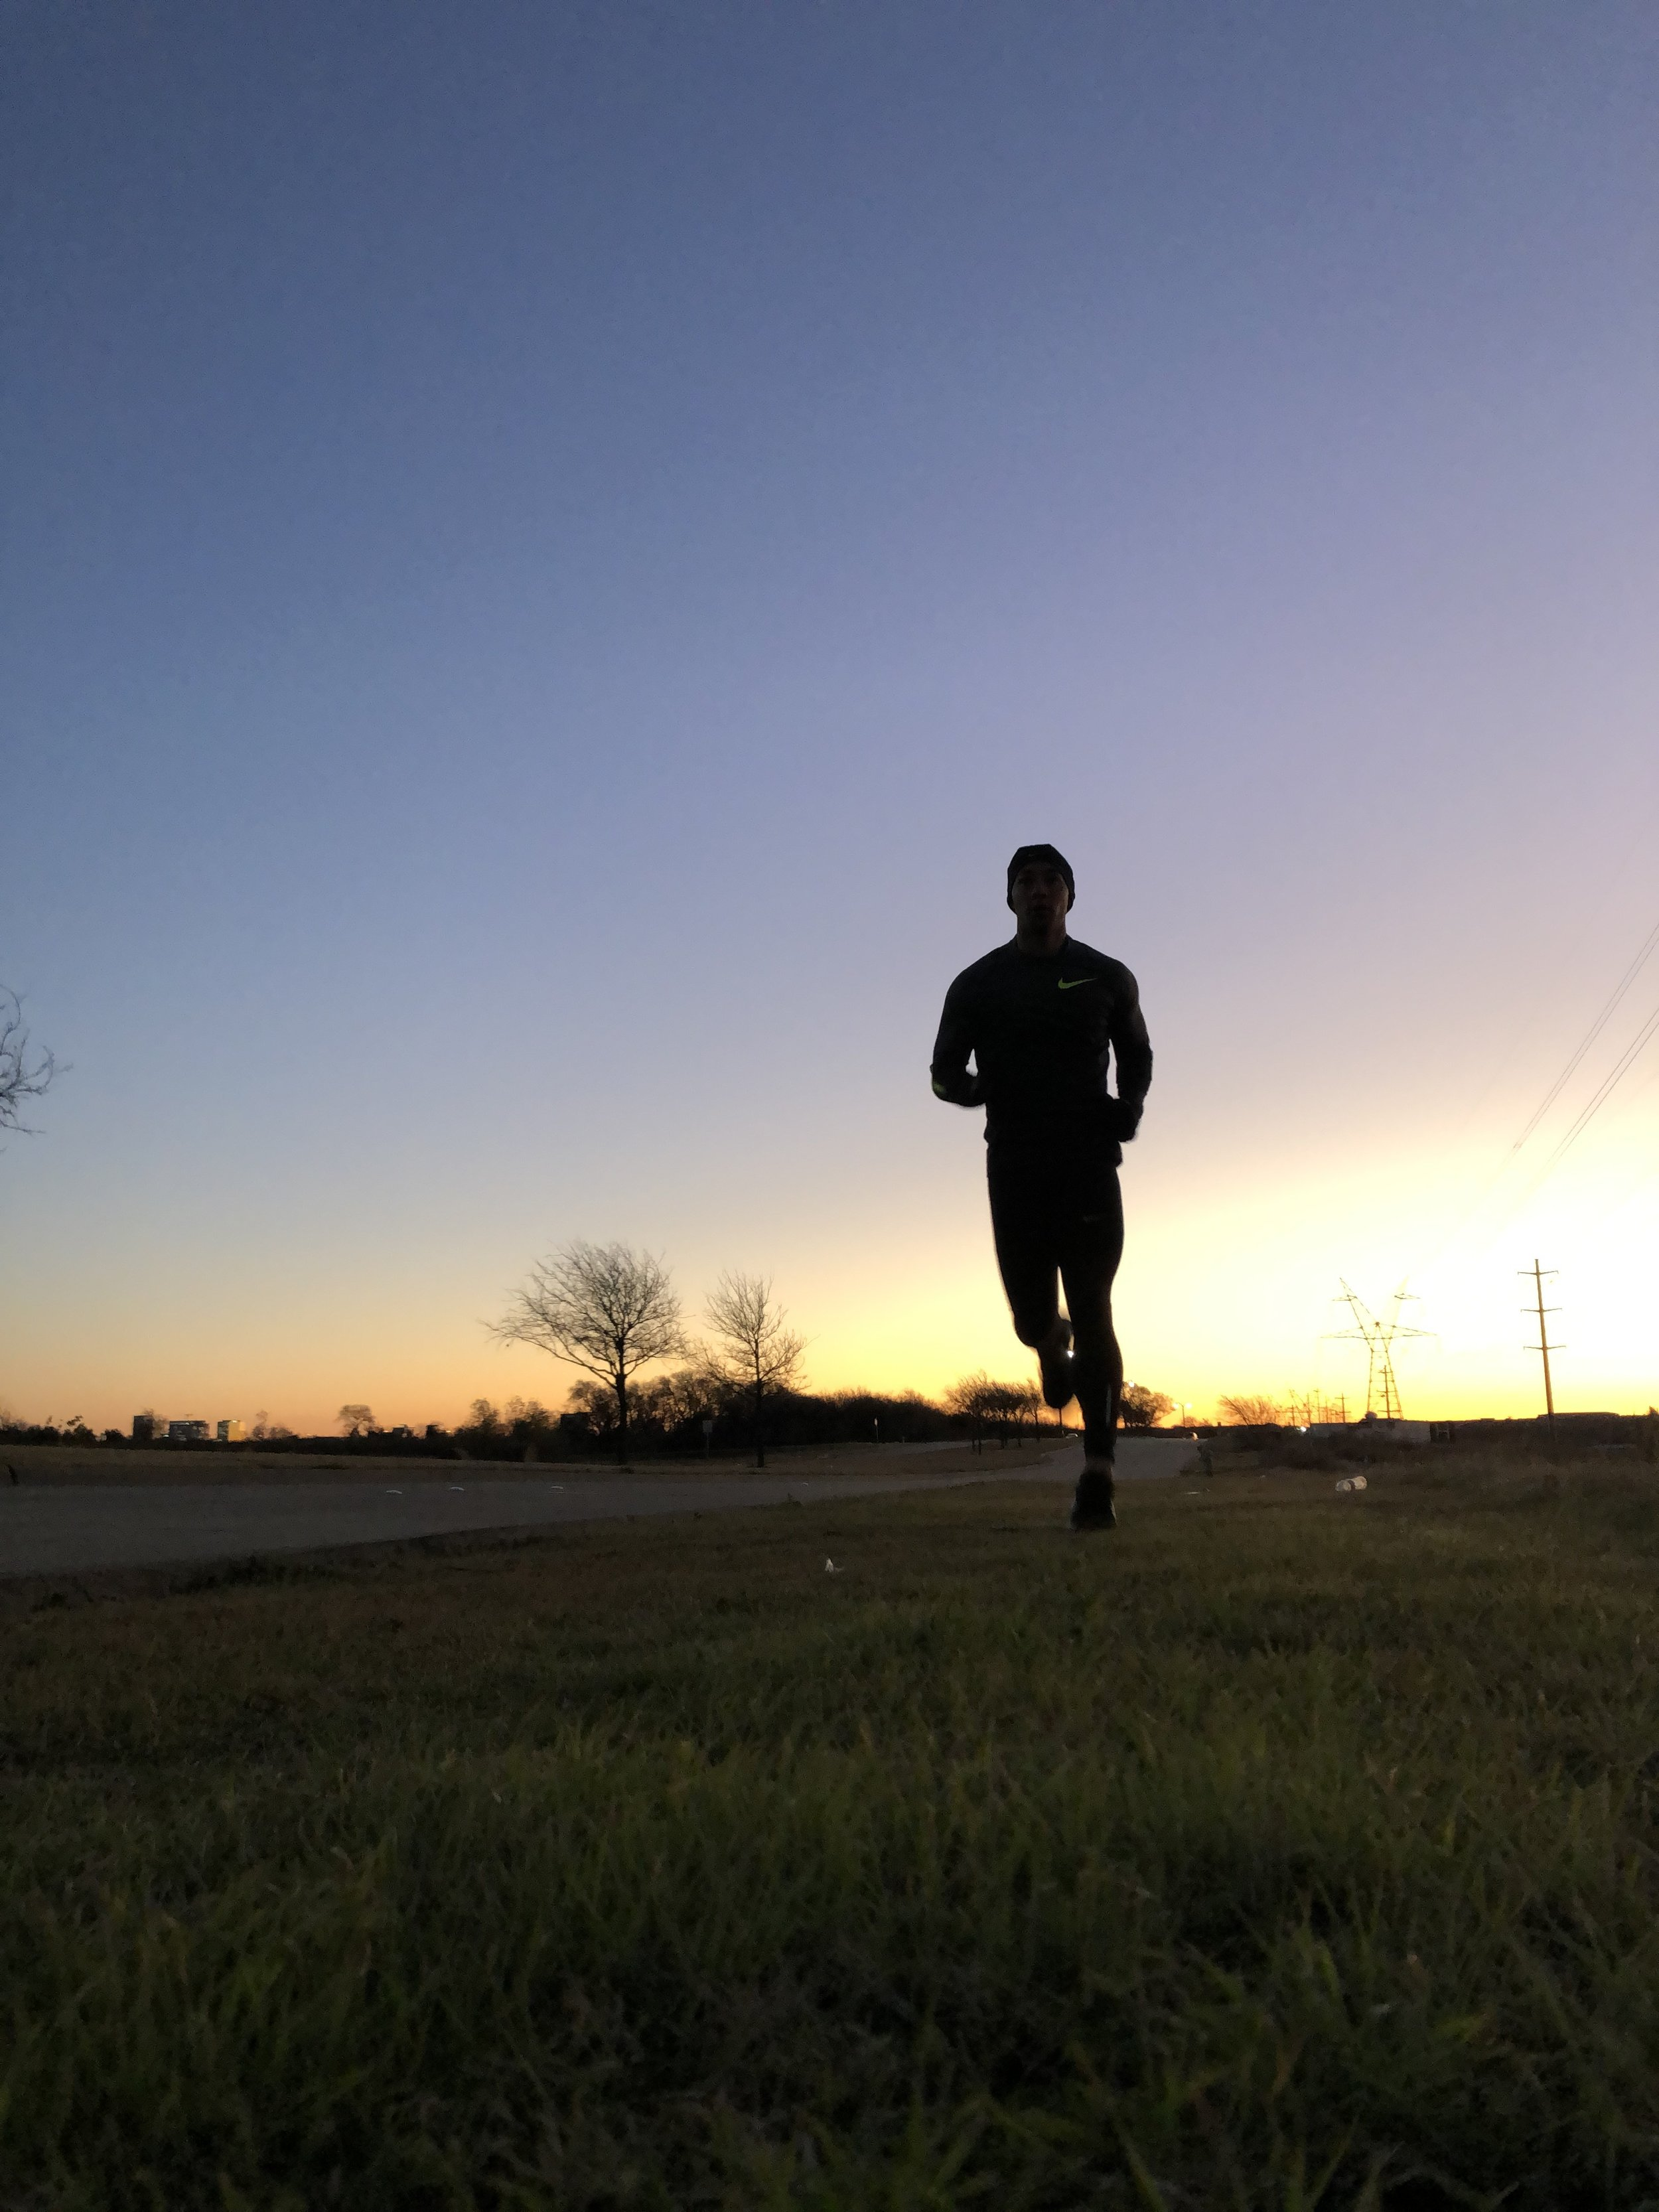 Morning Long run Marathon Training before the Sun comes up over Dallas, Texas